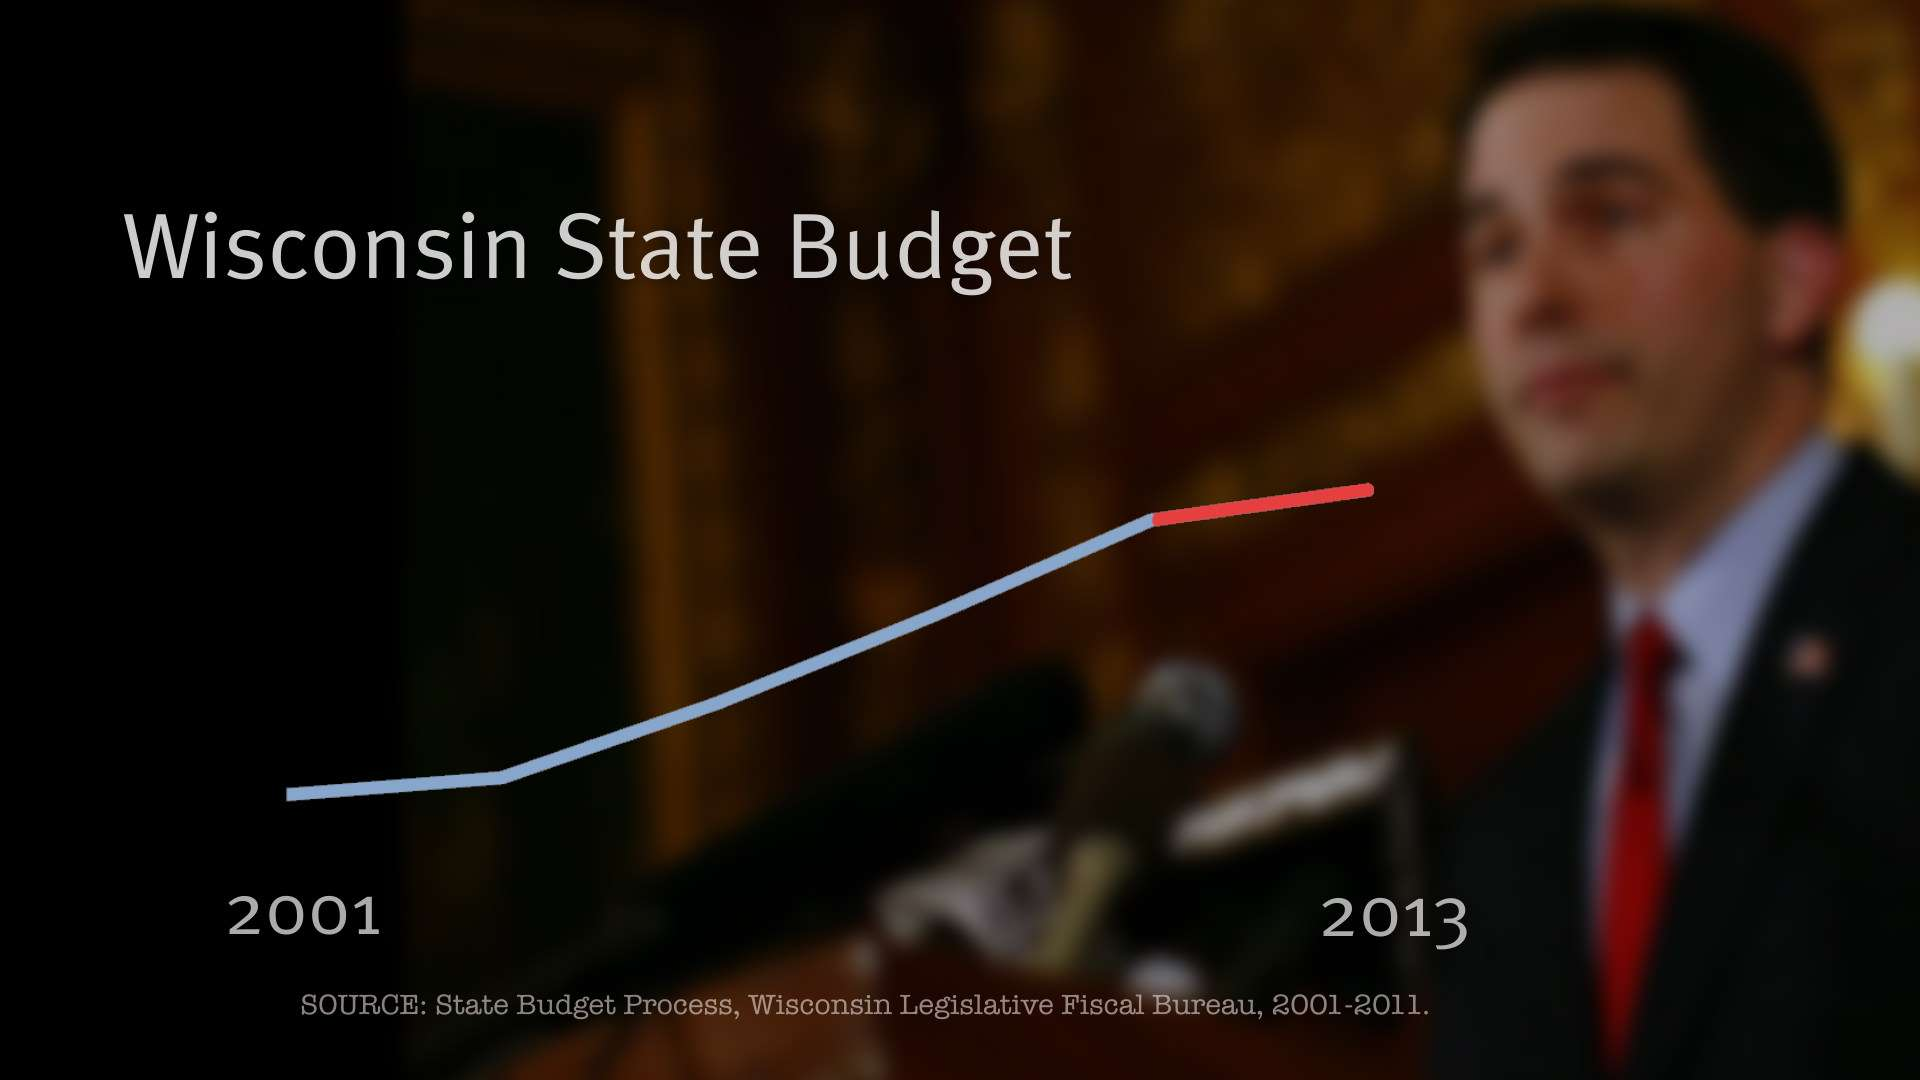 Wisconsin's All Funds budget